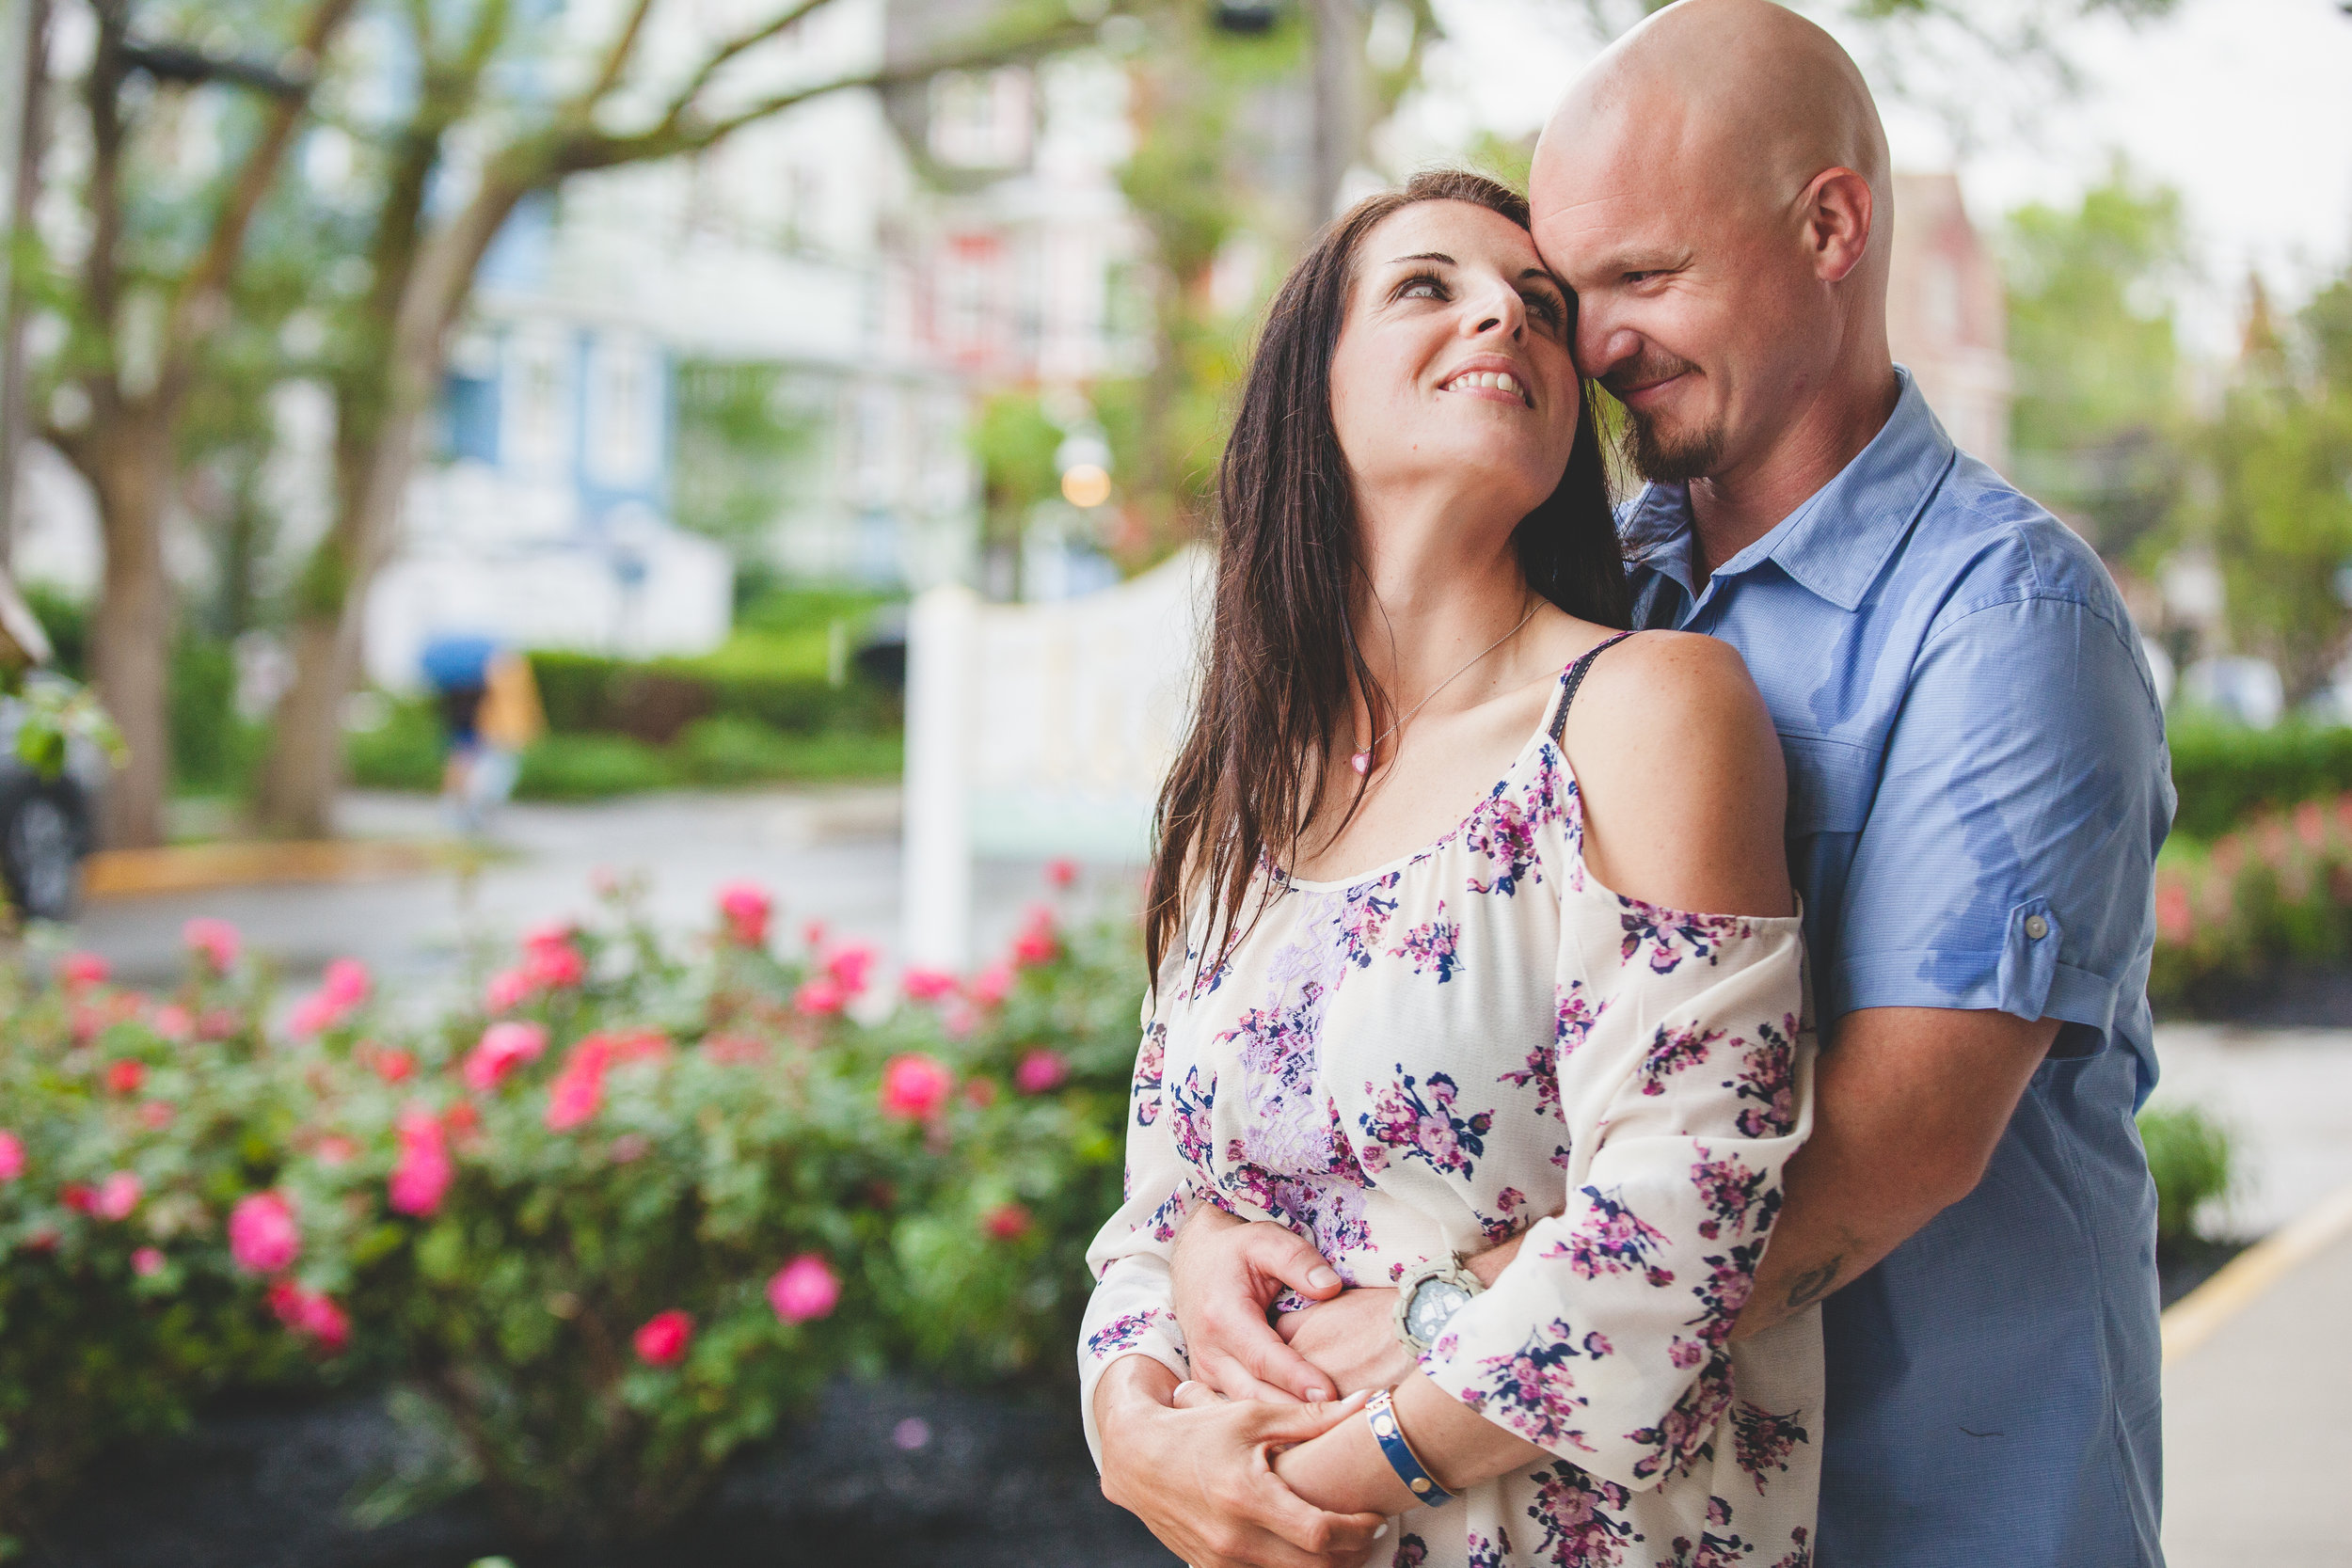 StaceyandJohnEngagementPrints-75.jpg